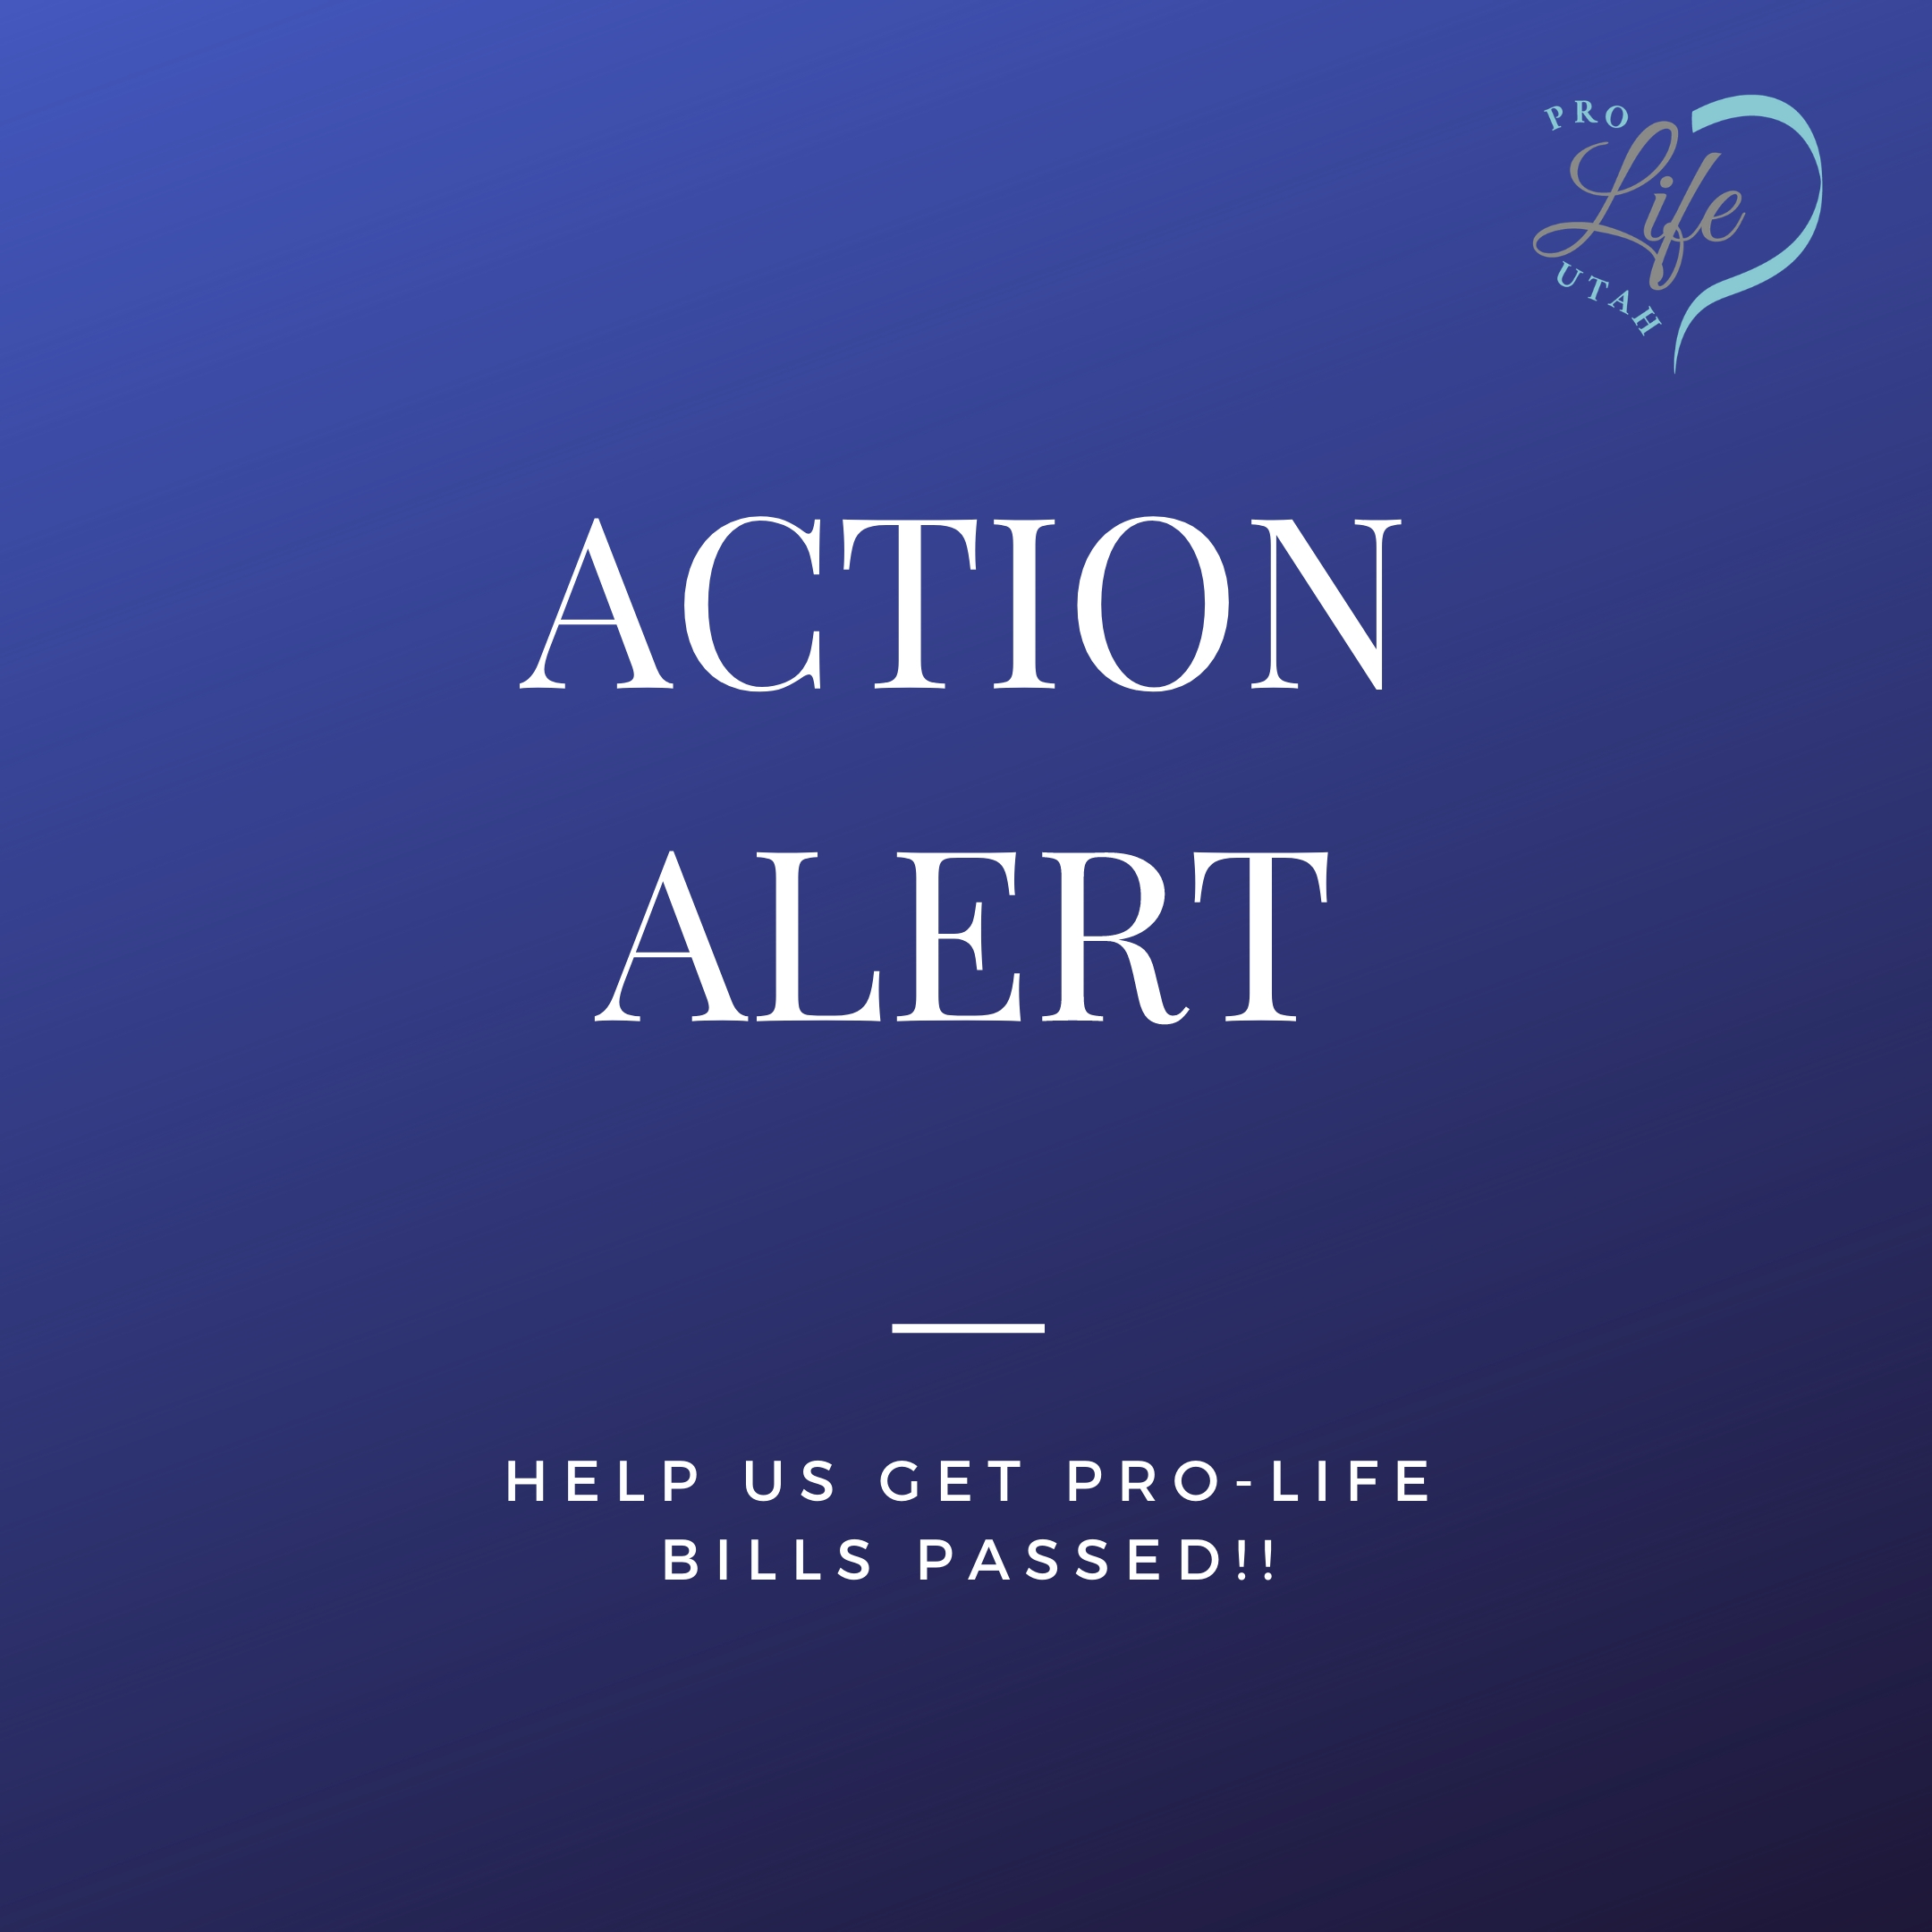 Help support Pro-Life Bills this Session